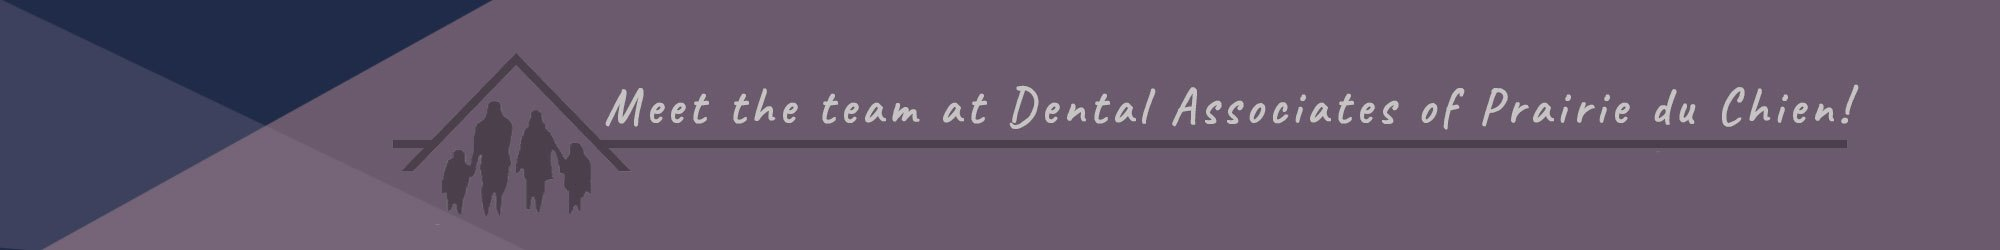 About Dental Associates of Prairie du Chien